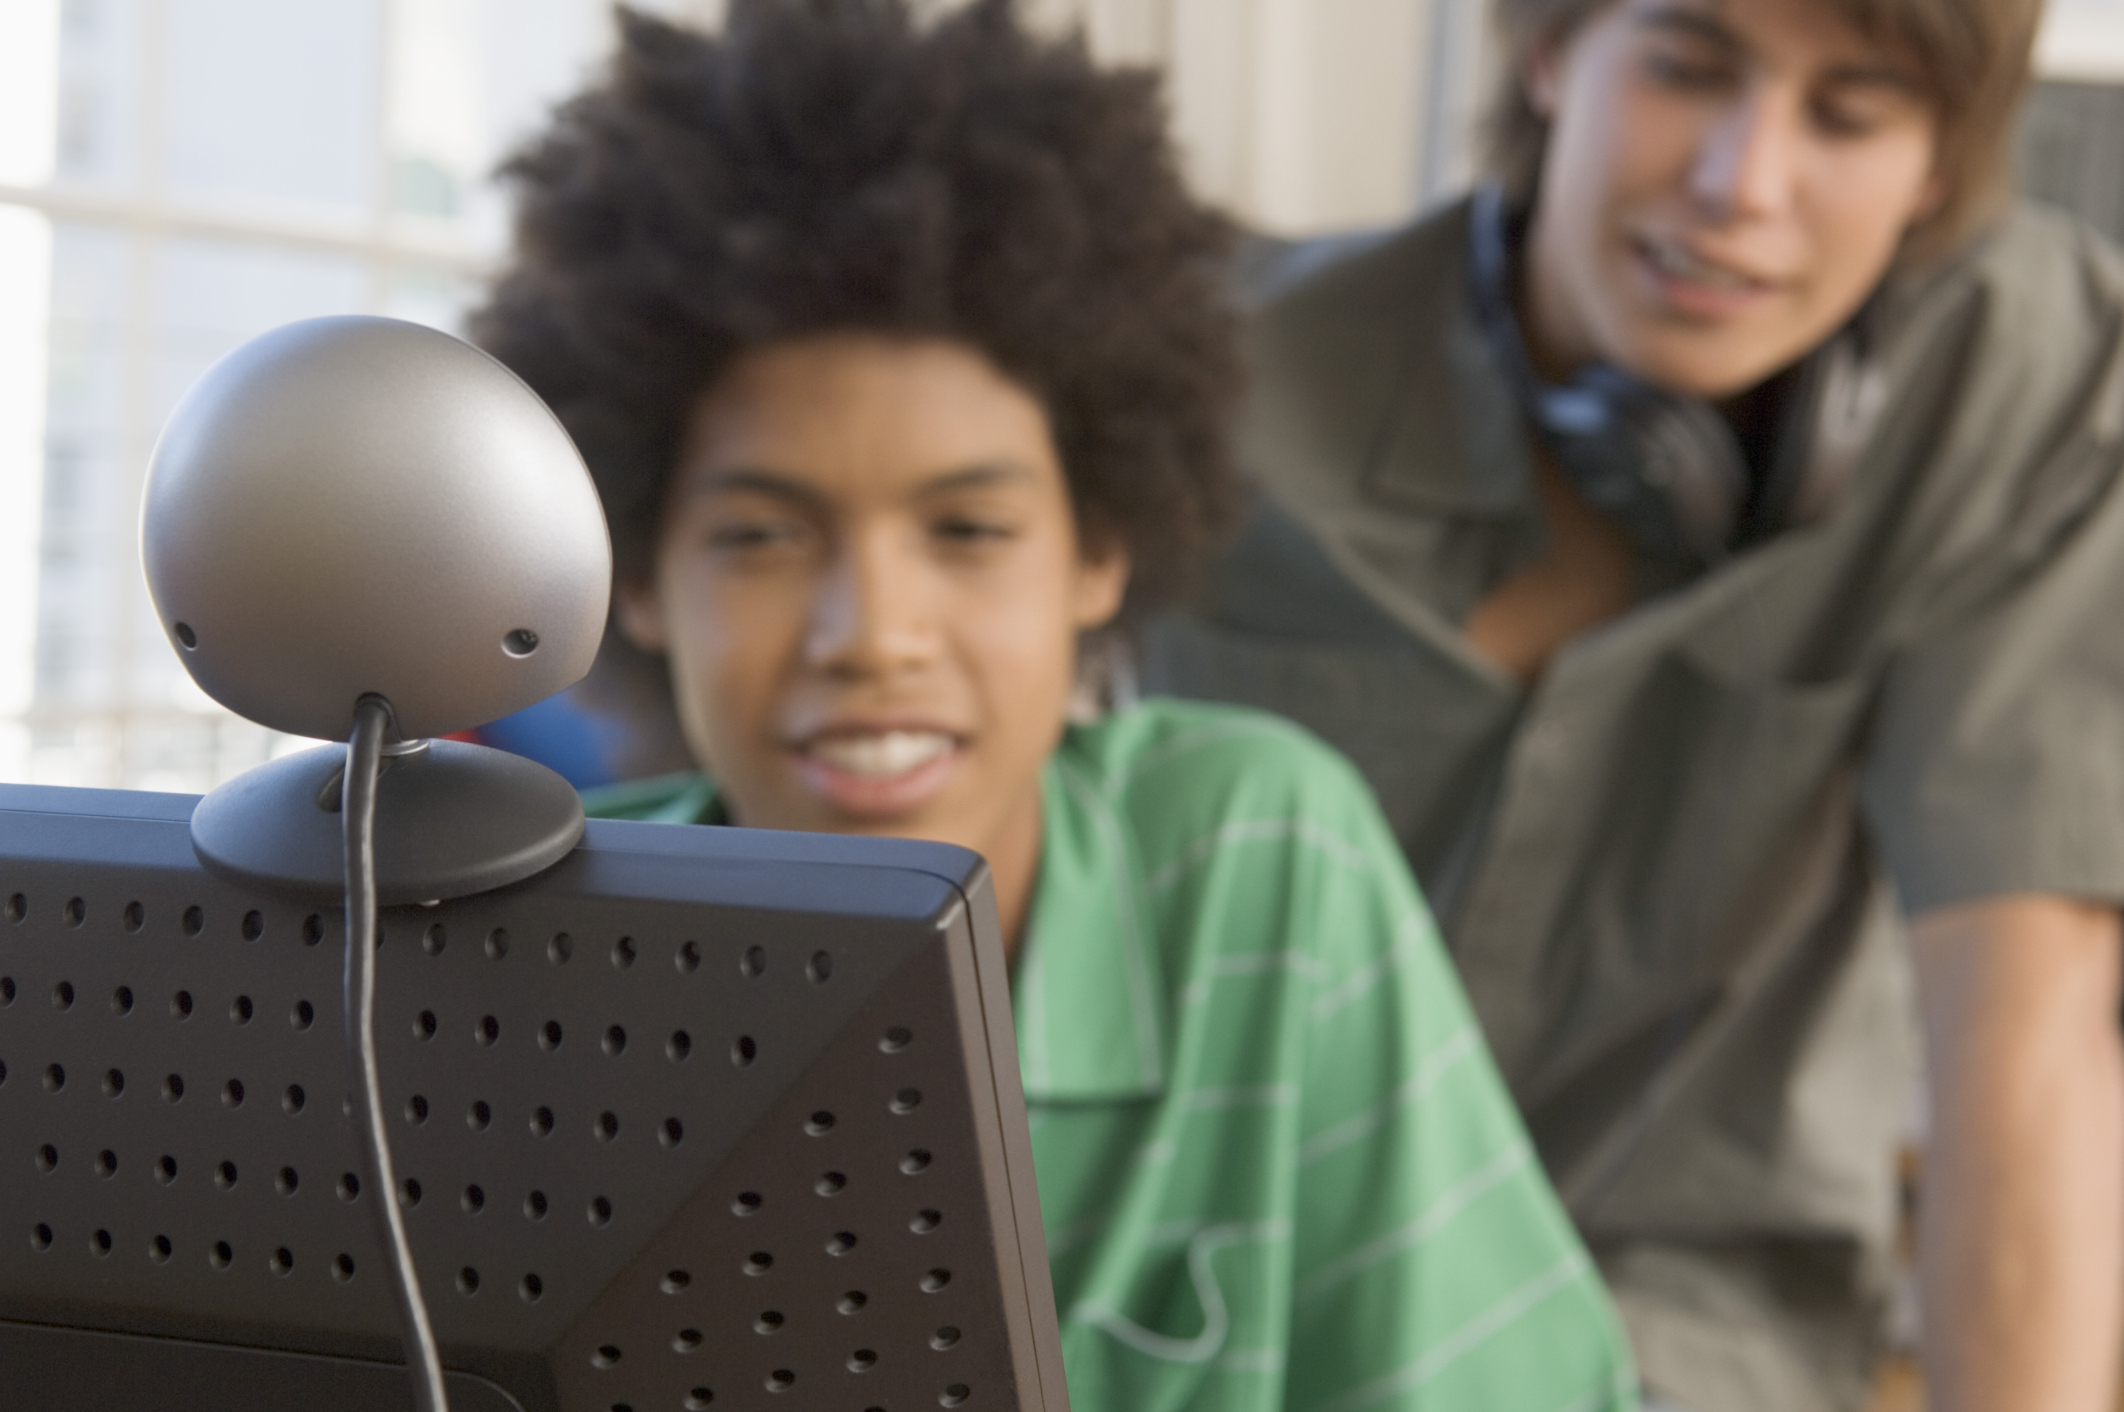 How to Make Another Person's Webcam Clearer in Skype | It